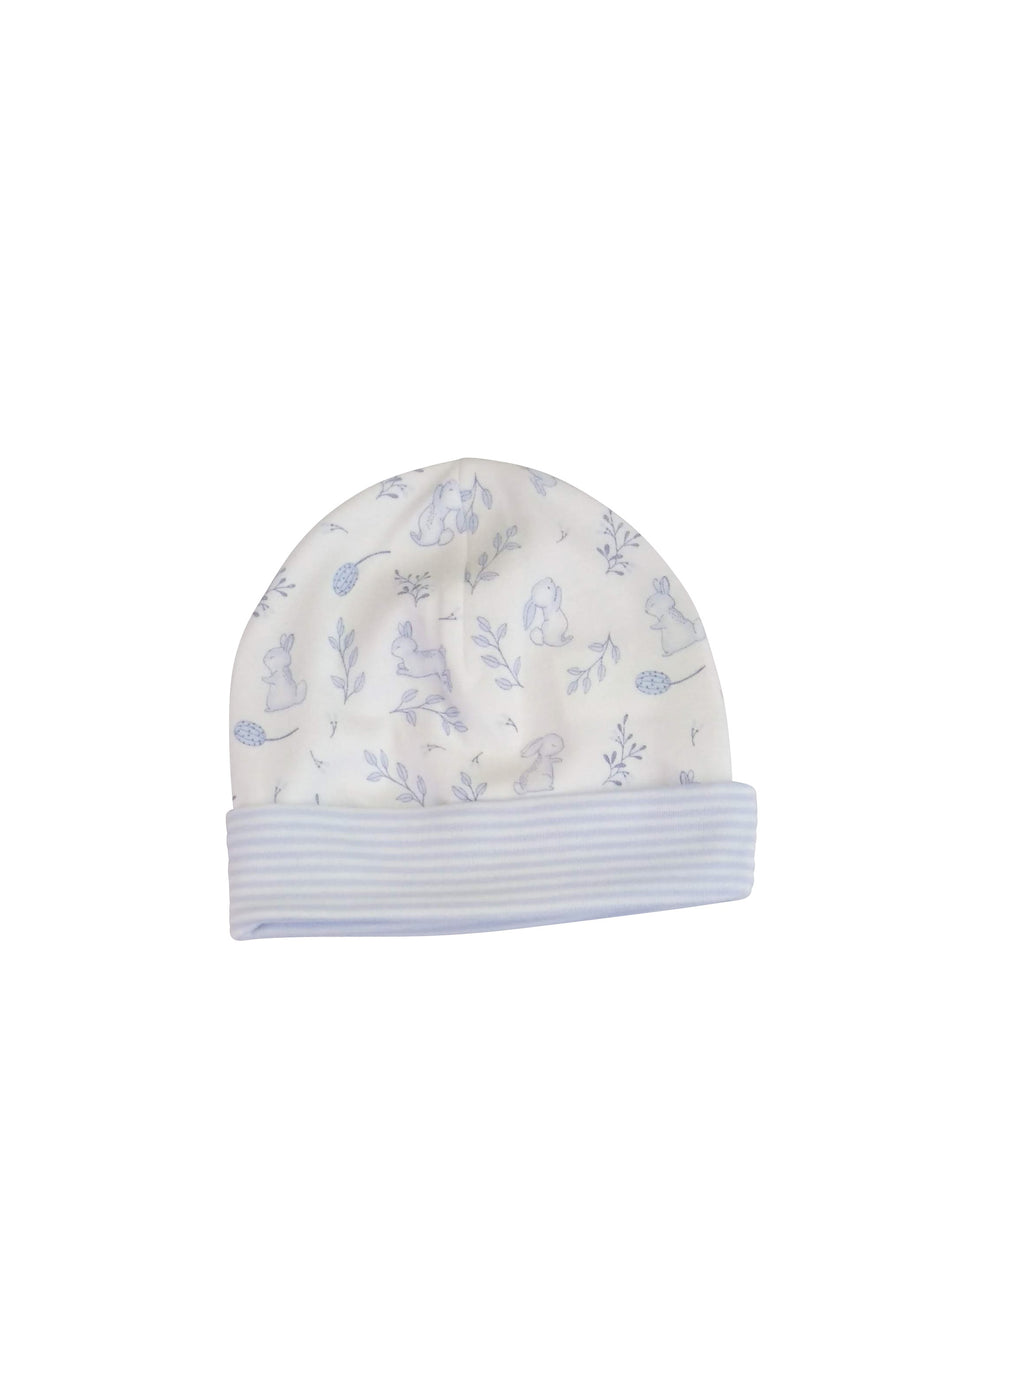 Baby Boy's Blue Bunnies hat - Little Threads Inc. Children's Clothing